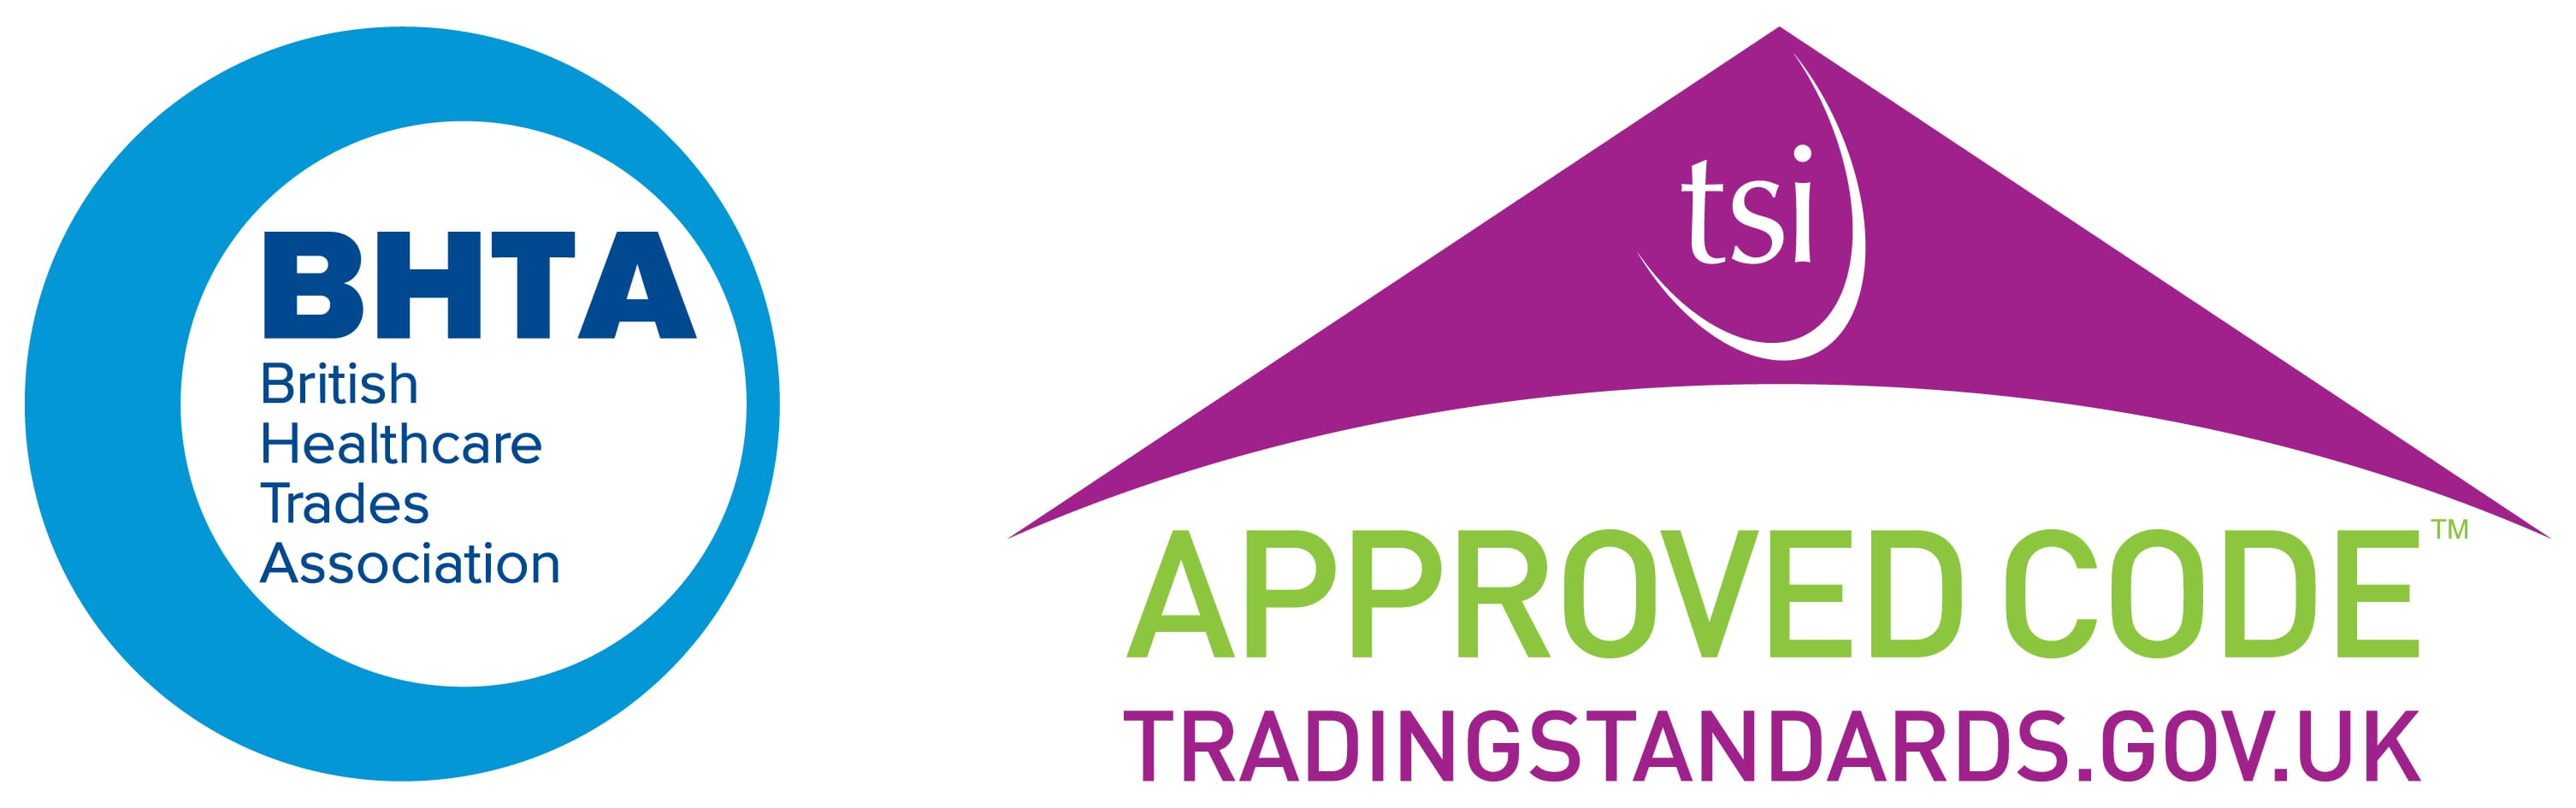 NRS Healthacare is part of British Healthcare Trades Association BHTA